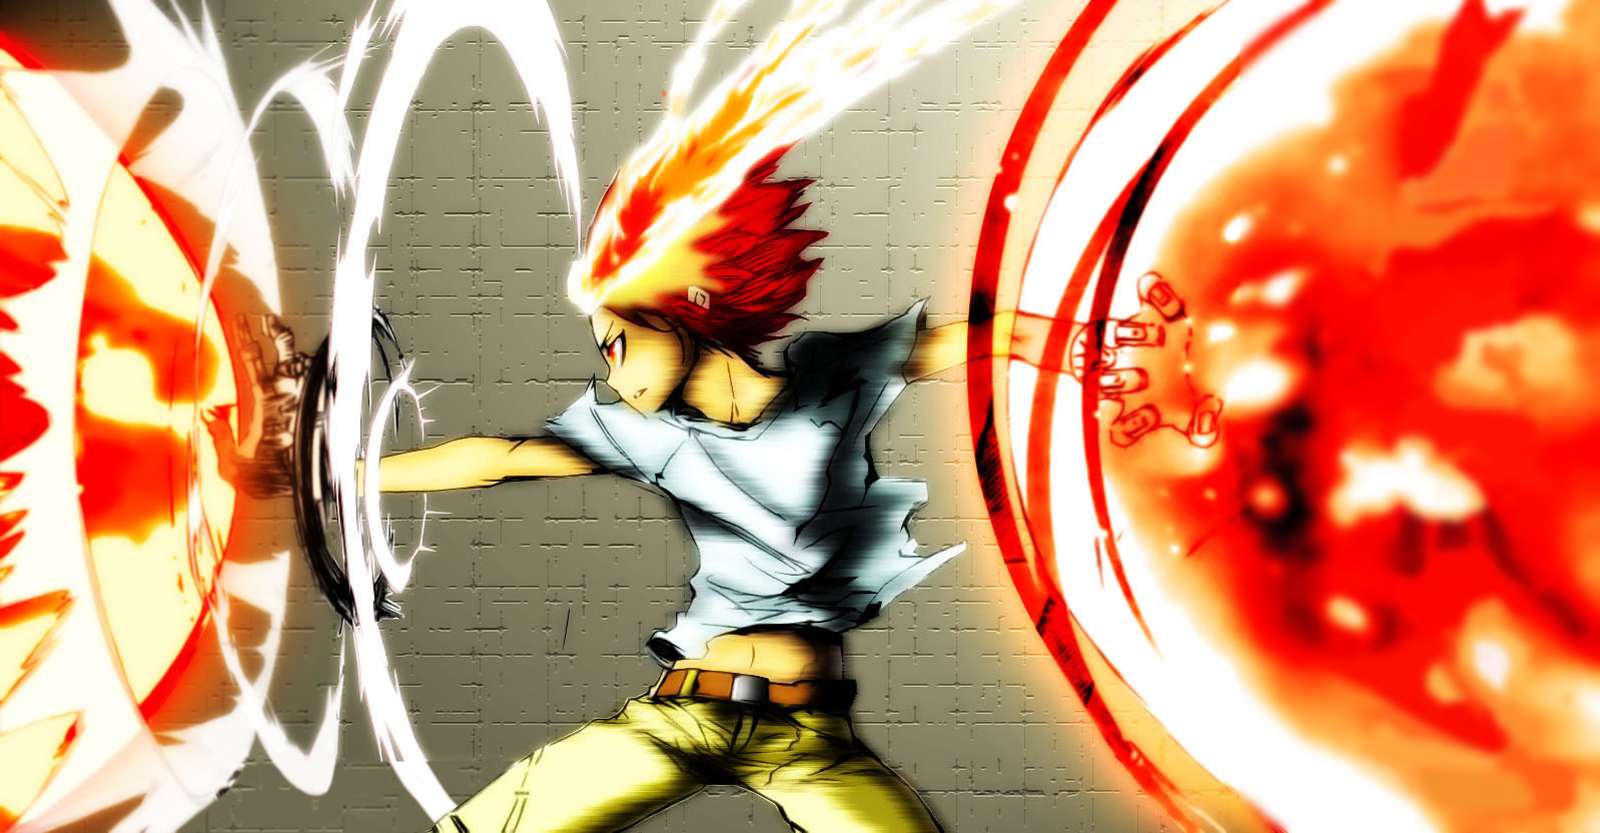 Katekyo Hitman Reborn Tsuna Anime Glove Flame HD Wallpaper Desktop PC 1600x833